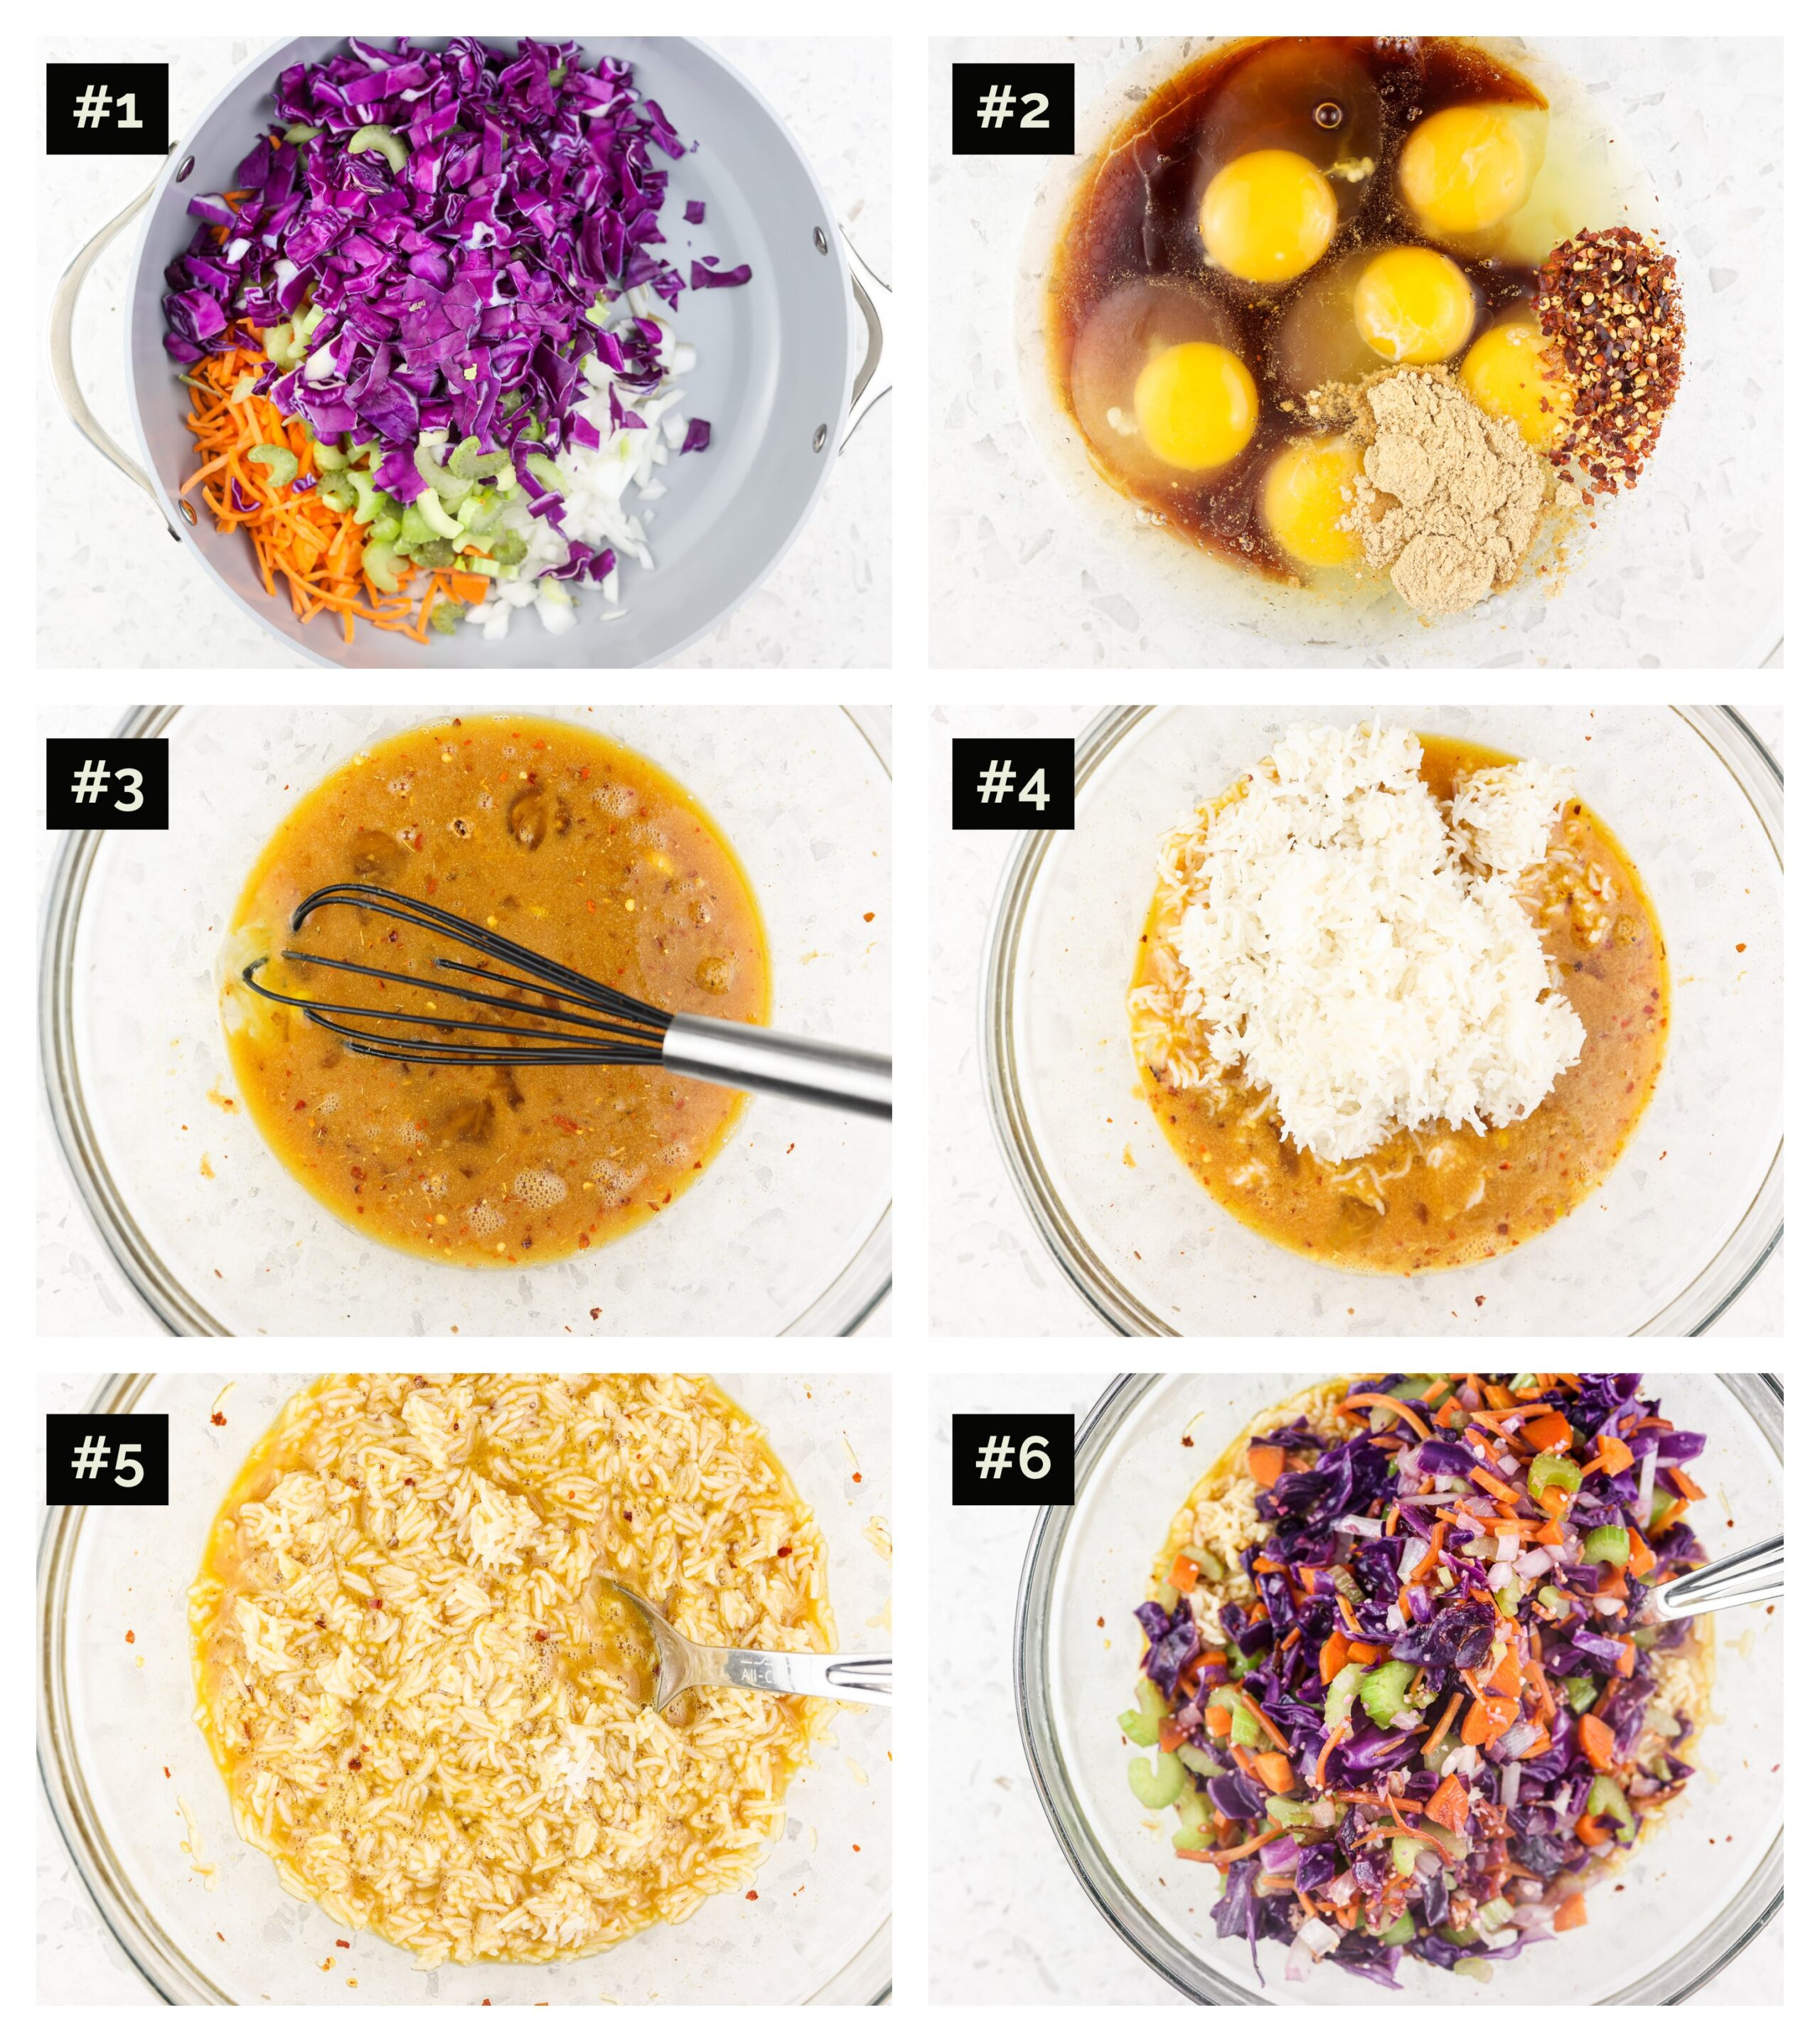 Six image collage with the first being a saute pan with colorful veggies, the second and third eggs whisked with soy sauce, then a glass bowl with rice and the brown egg mixture and finally the cooked veggies in a grey saute pan.